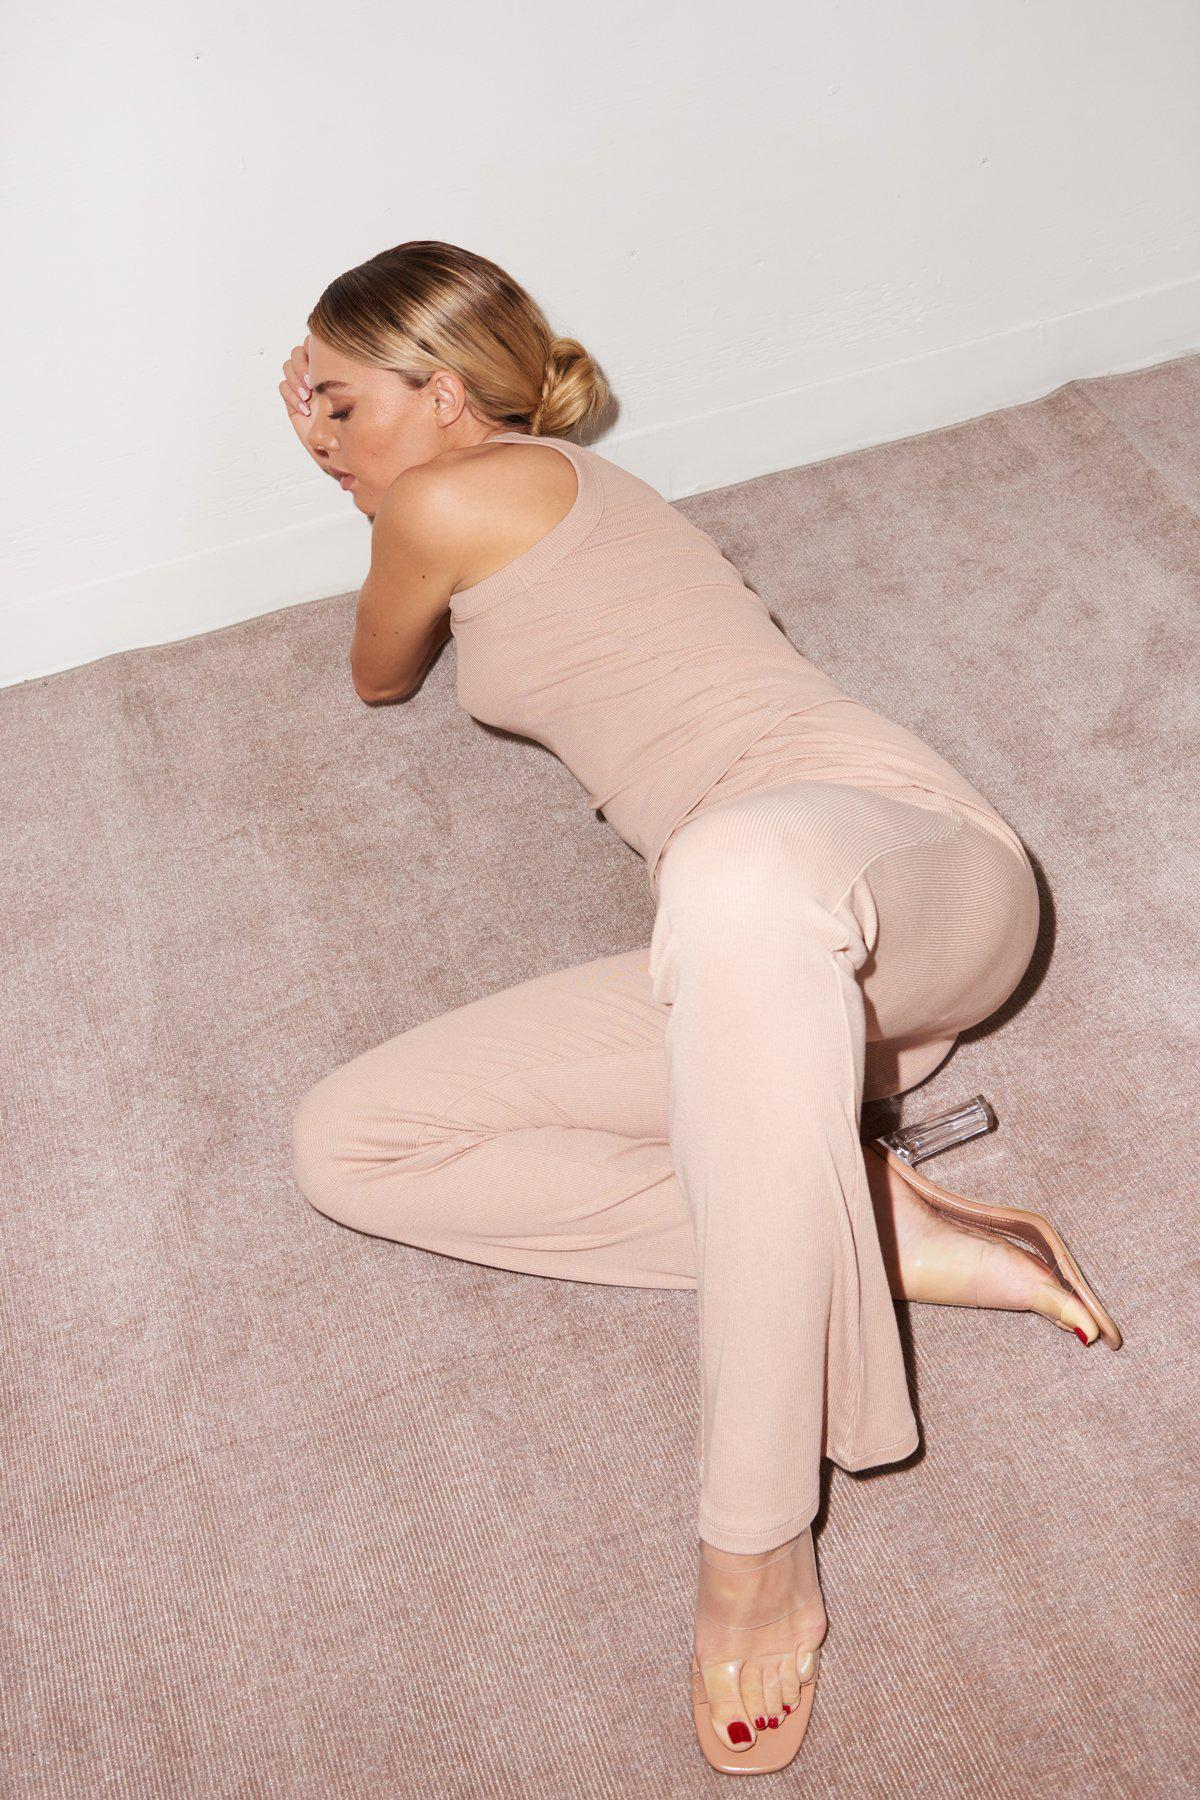 Ribbed Charlotte Pant - Nude 5